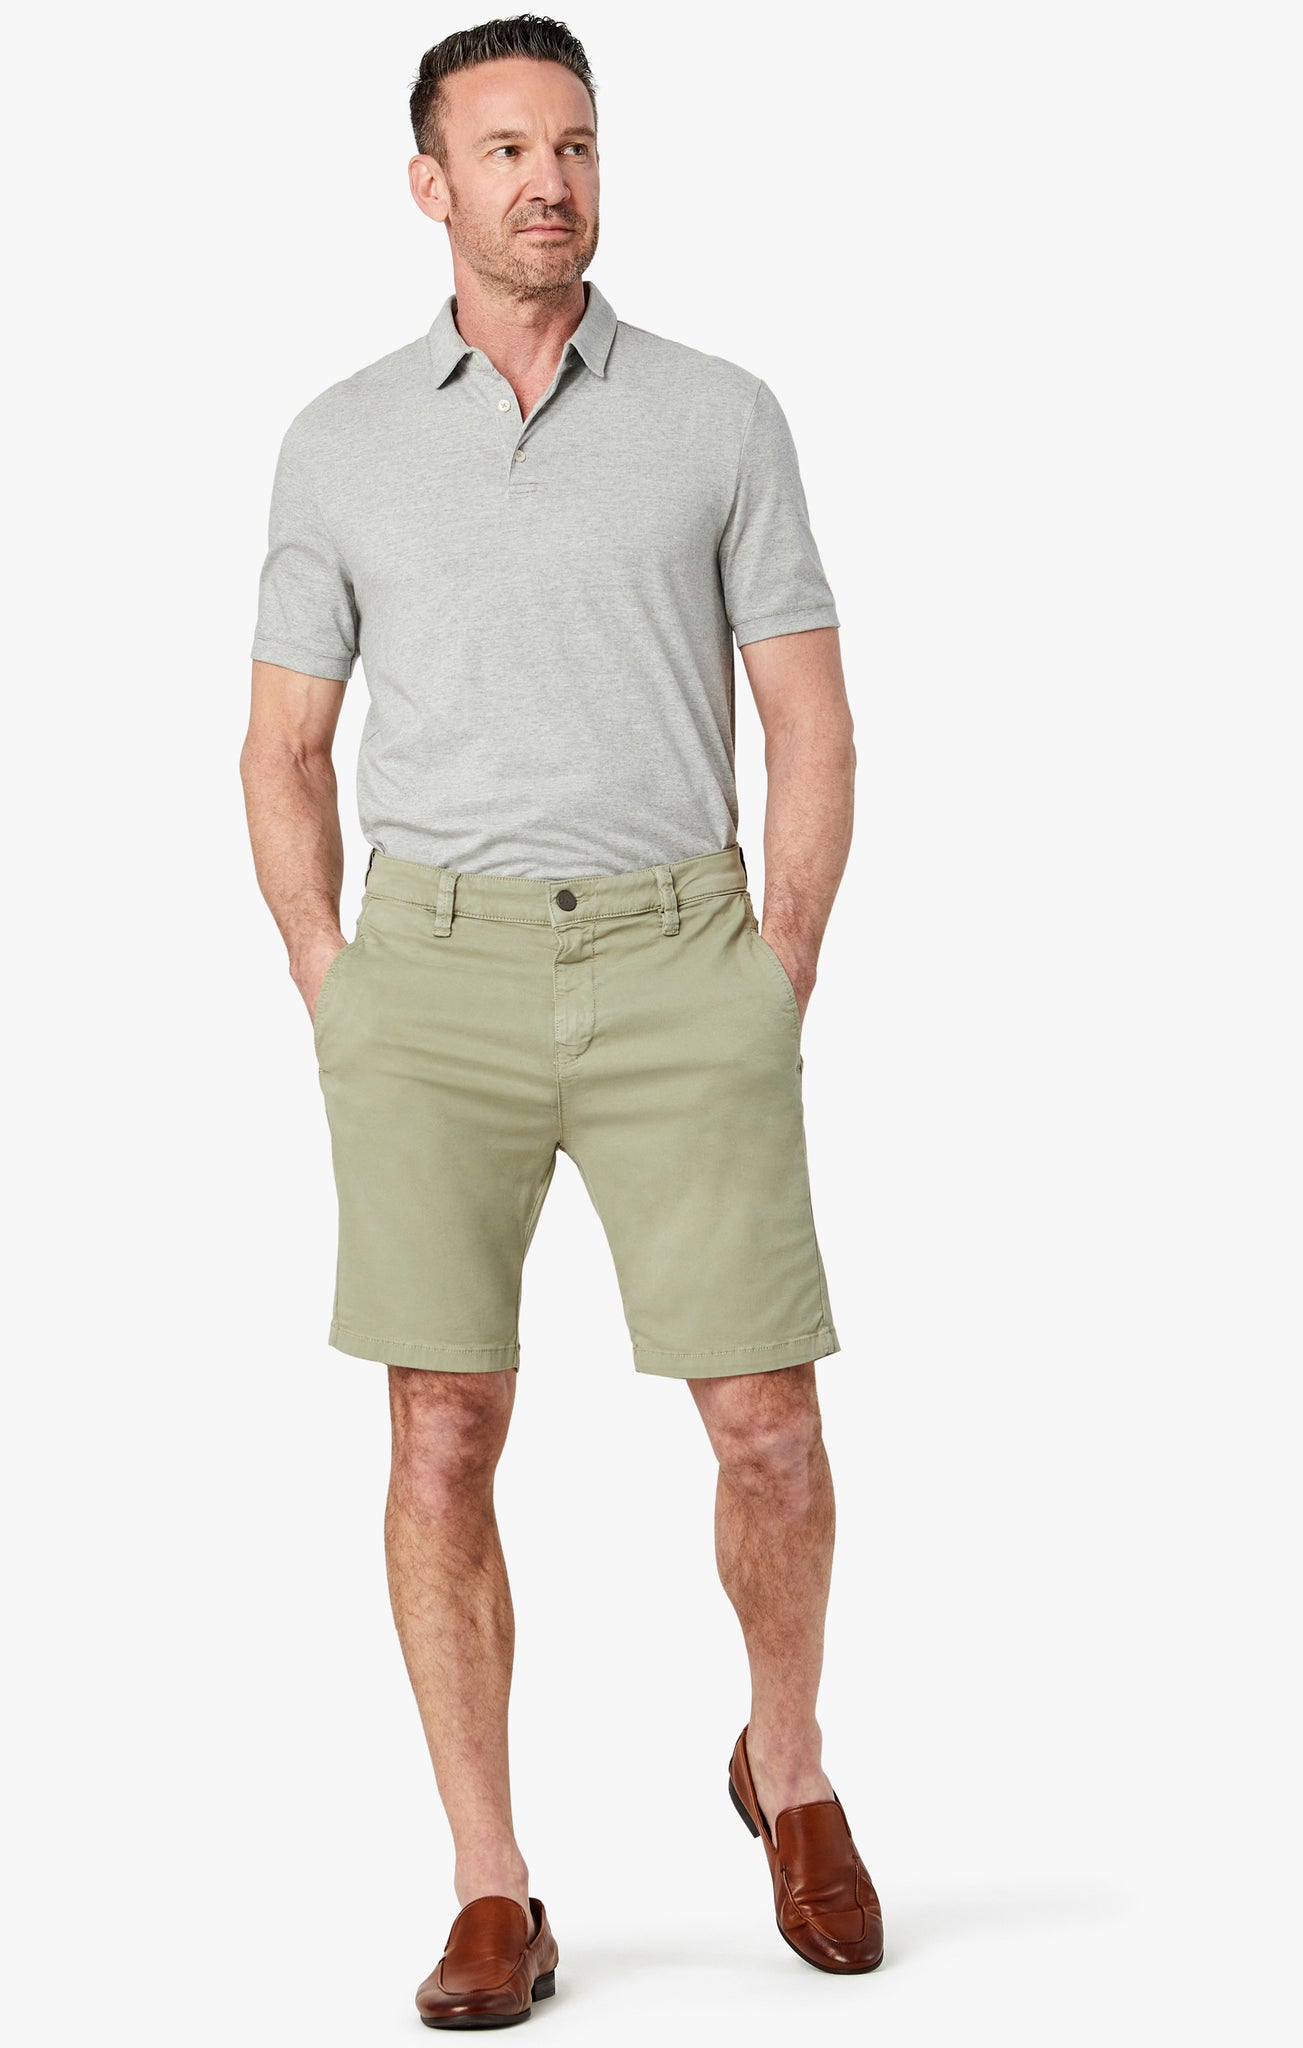 Nevada Shorts in Sage Soft Touch